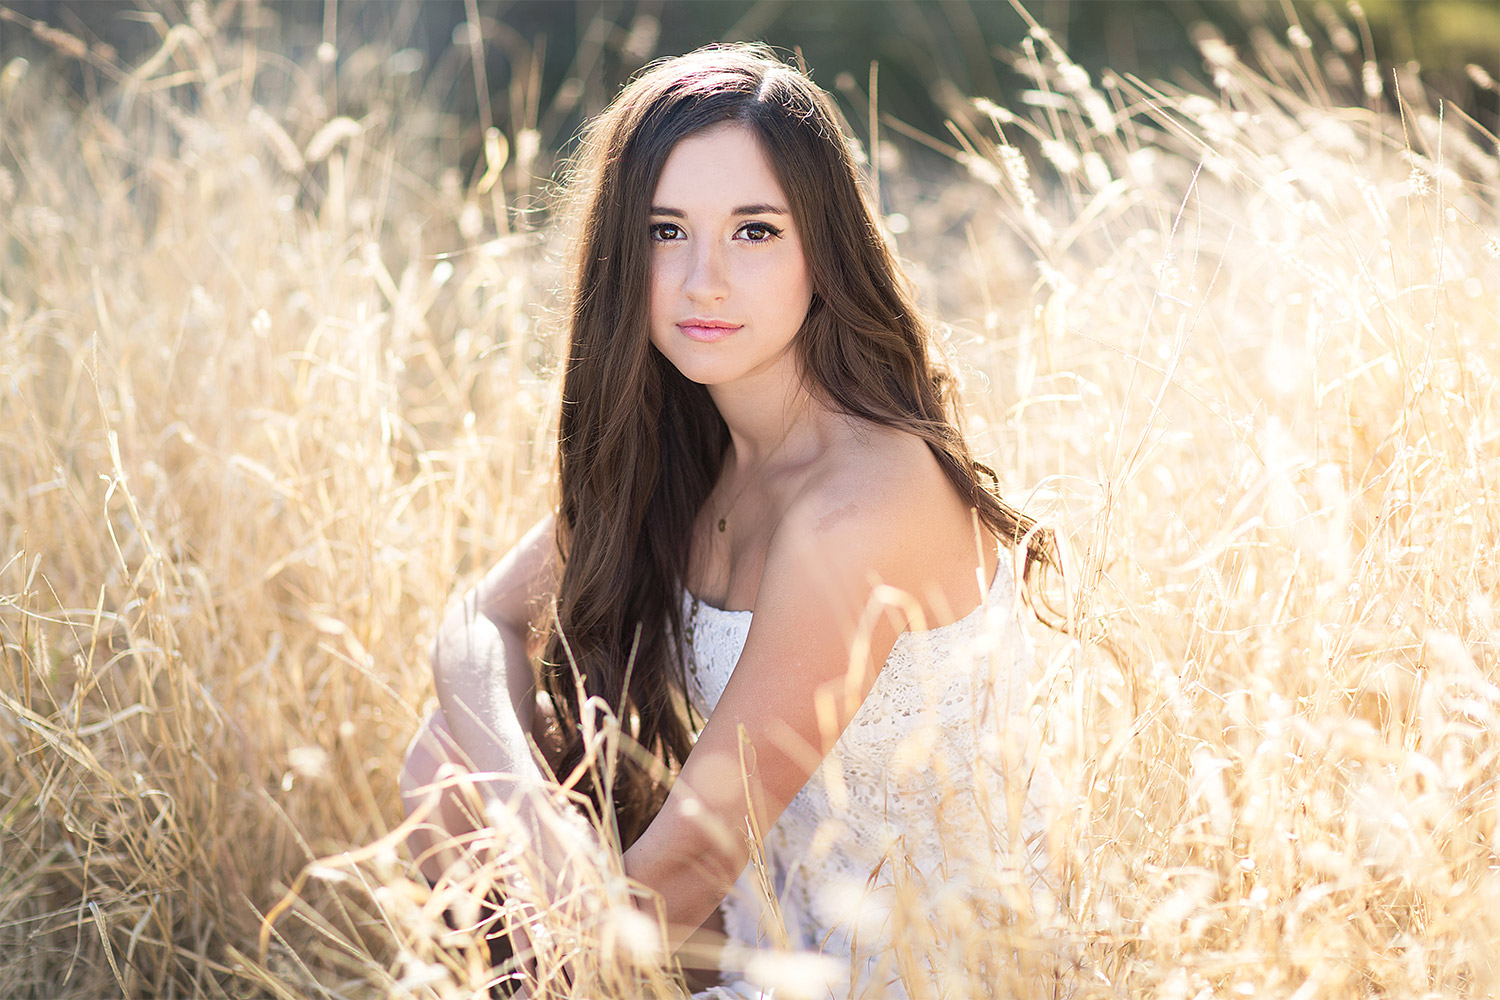 Stephanie Newbold Senior Portrait Photographer